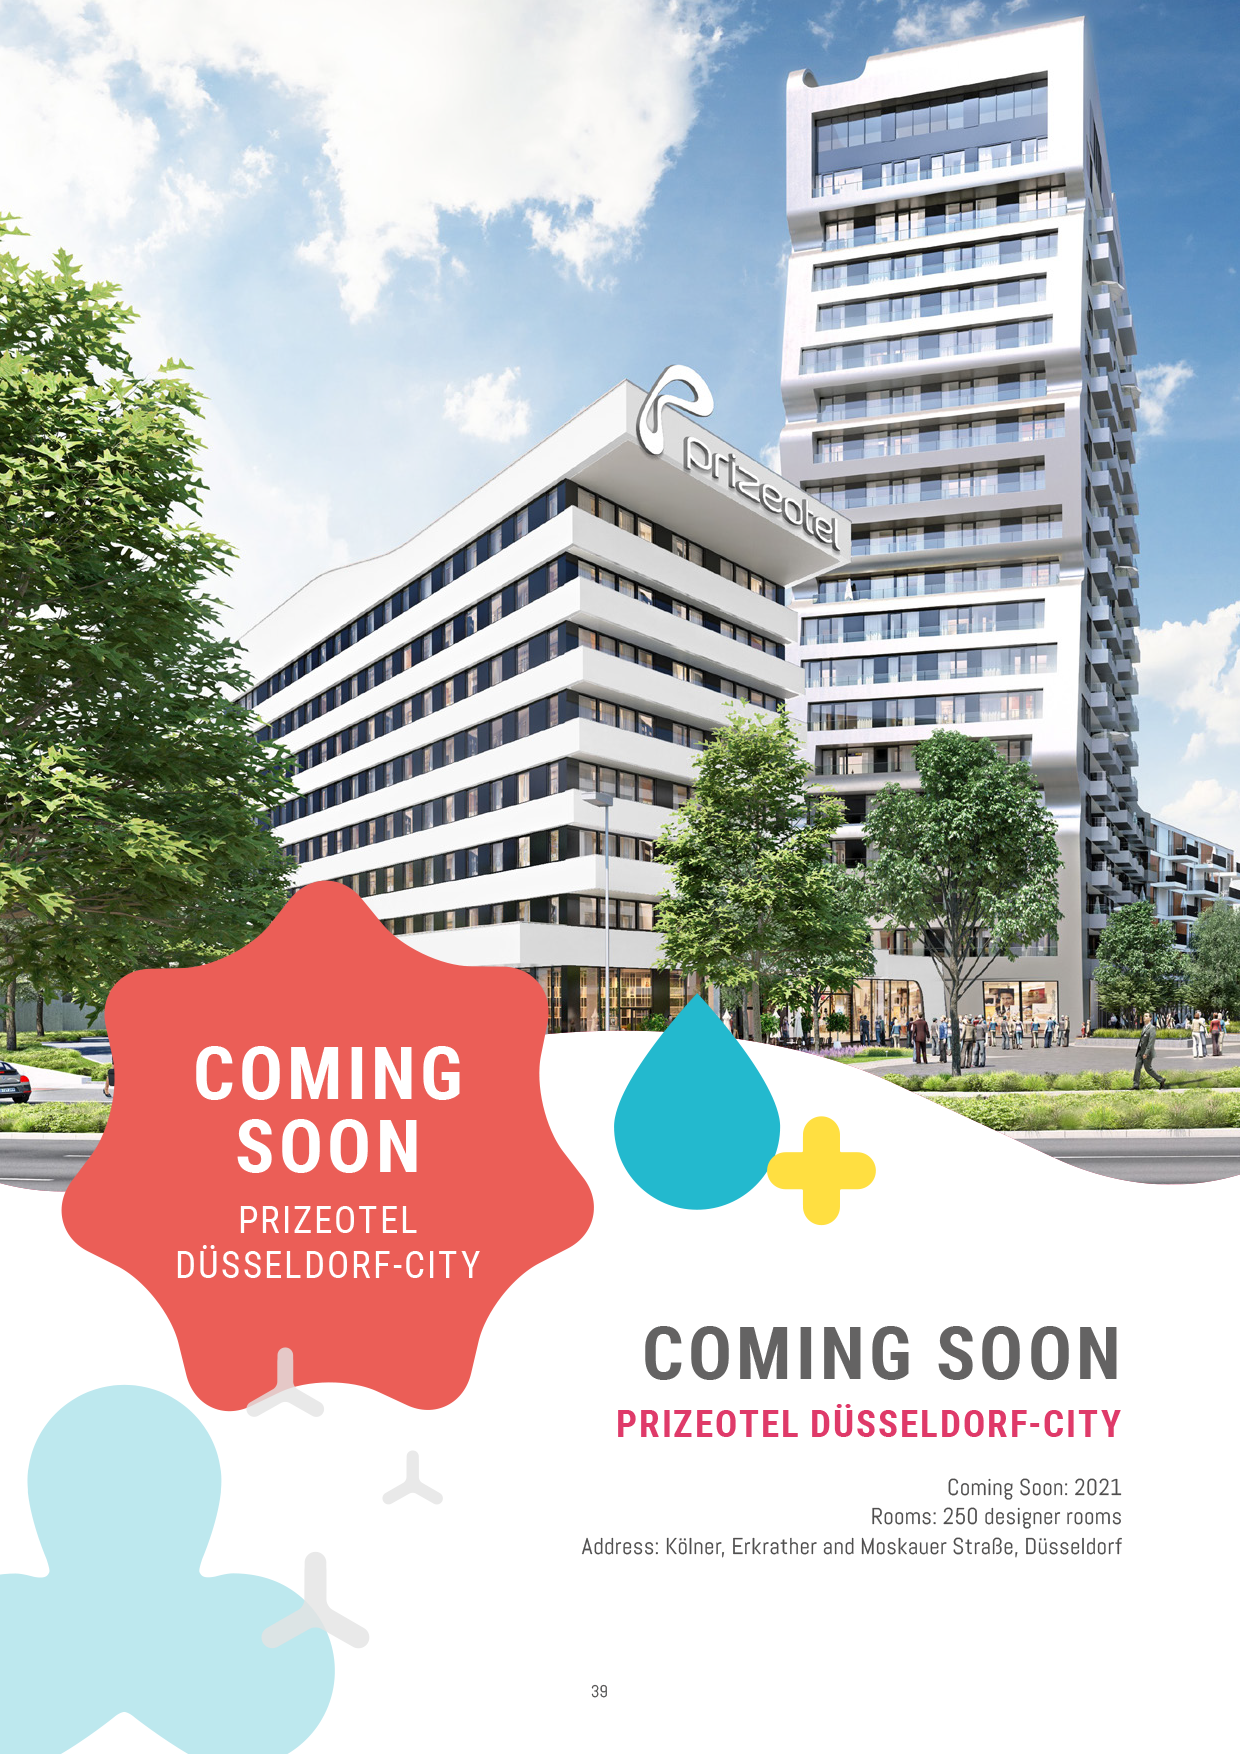 Coming Soon - prizeotel Dusseldorf-City